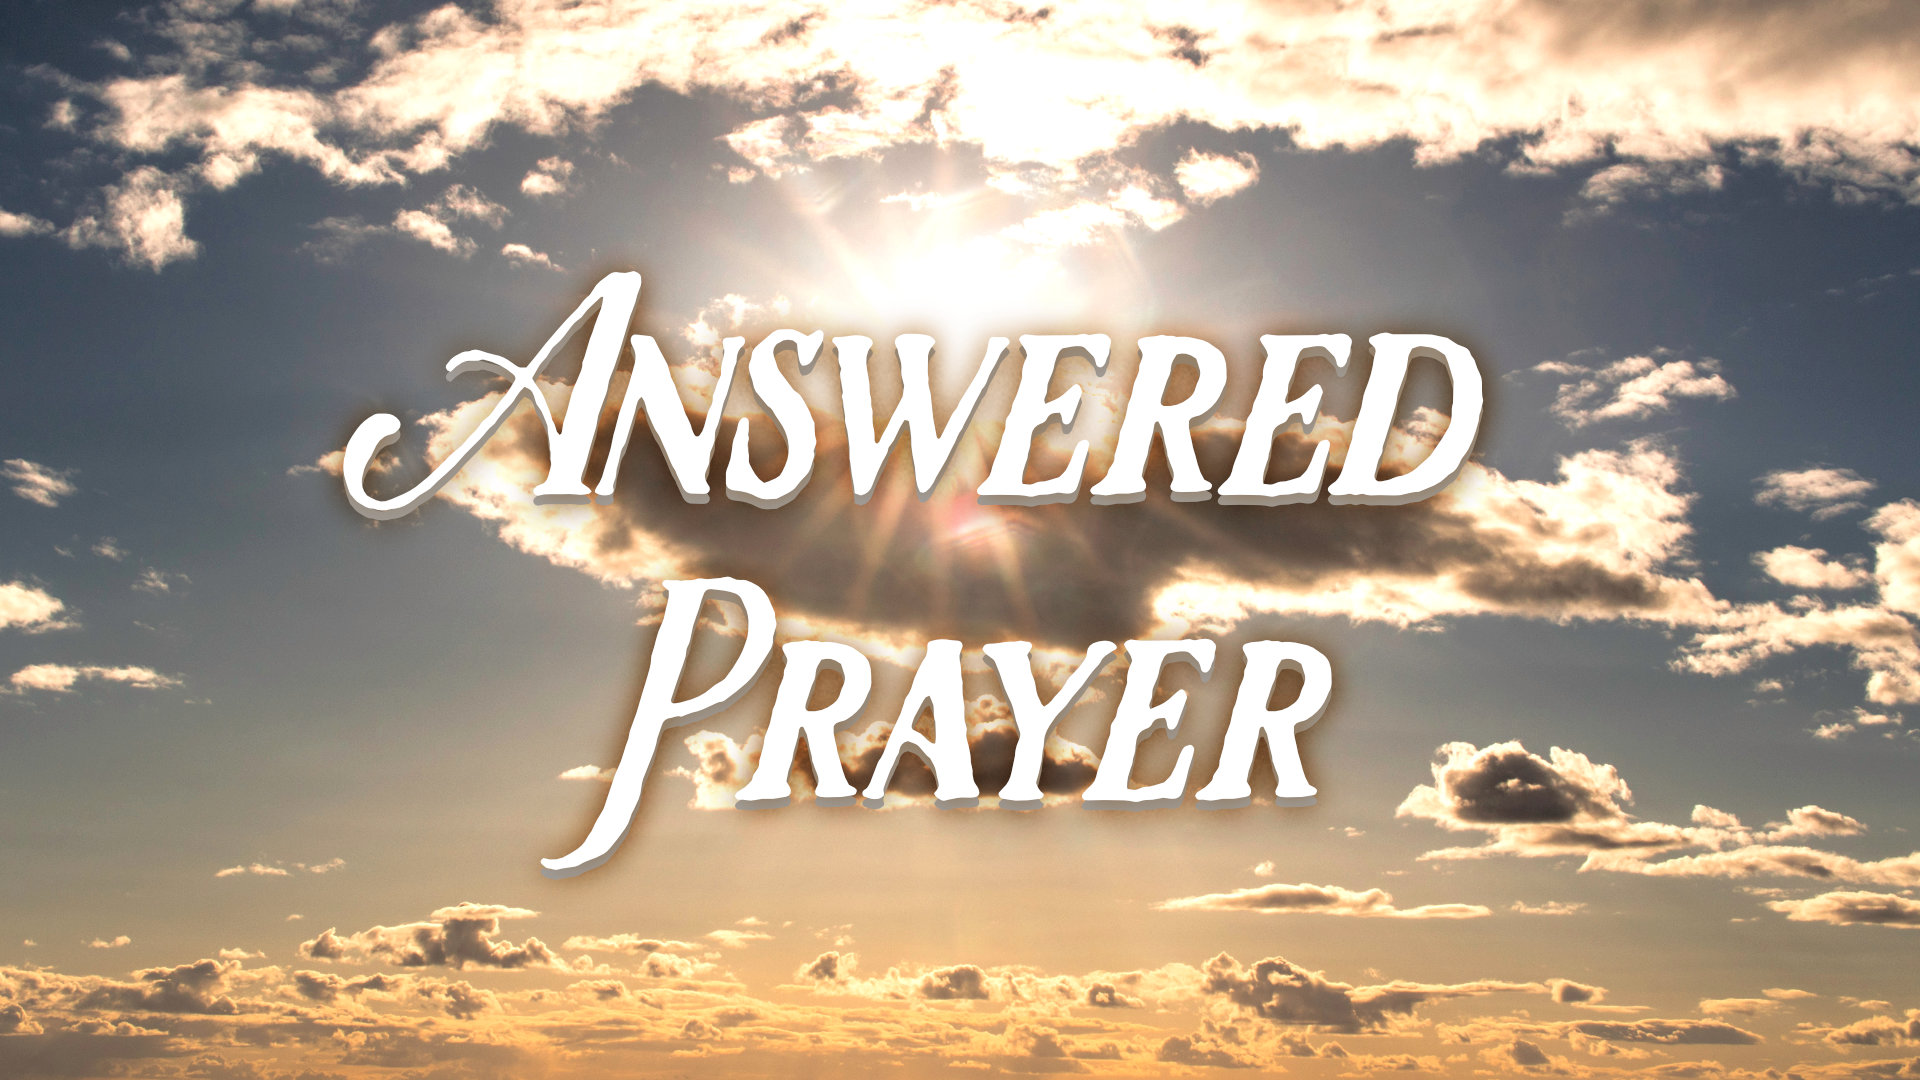 2019-05-19 Answered Prayer.jpg